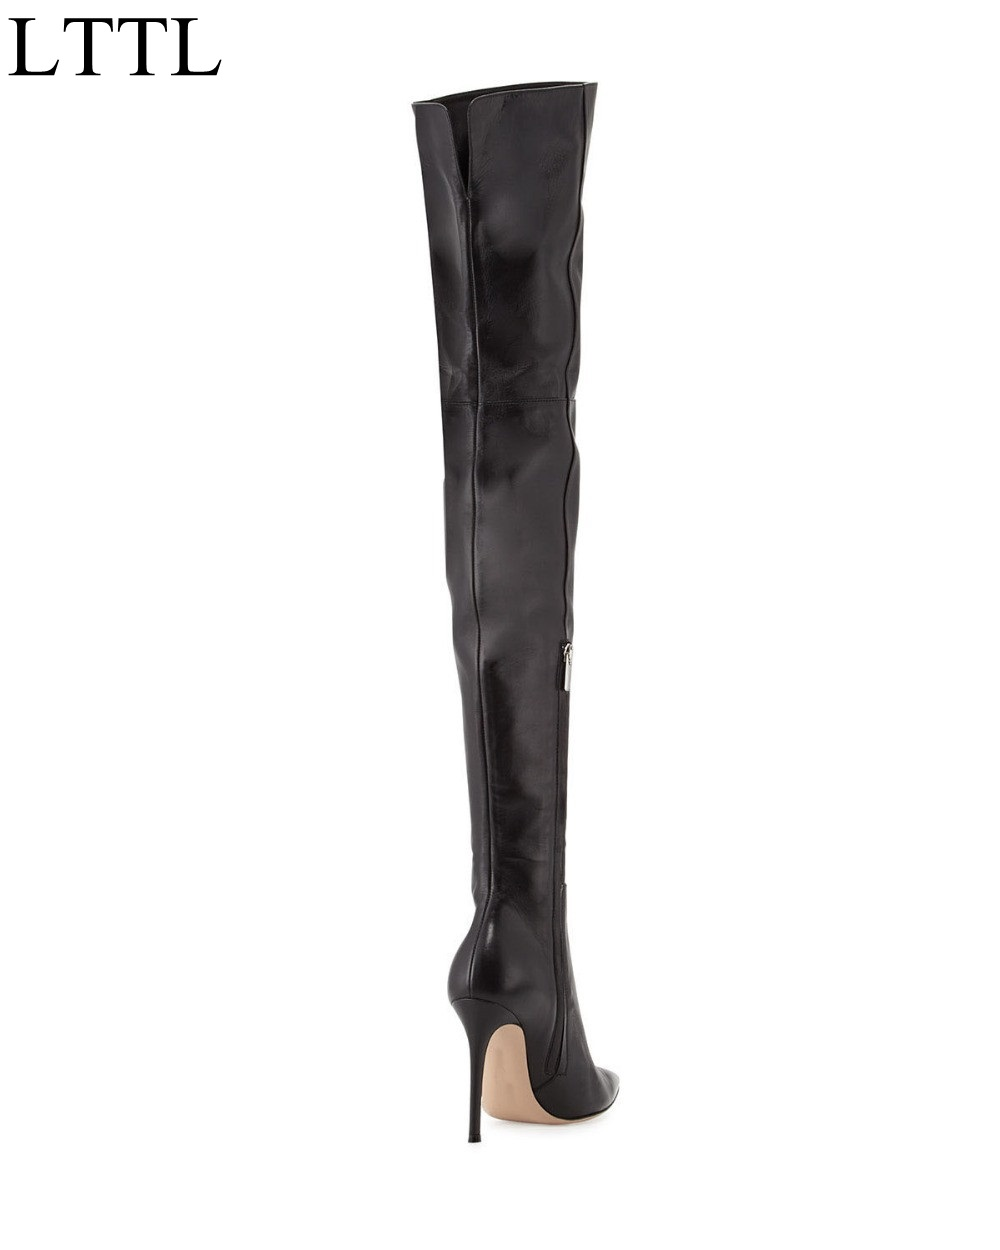 Hot Selling Black Leather Pointed Toe Side Zipper Over The Knee Boots Sexy Tight High Boots Women Size 34-41 Free Ship hot selling beige grey suede leather over the knee boots pointed high heel side zipper tight high boots women long boots